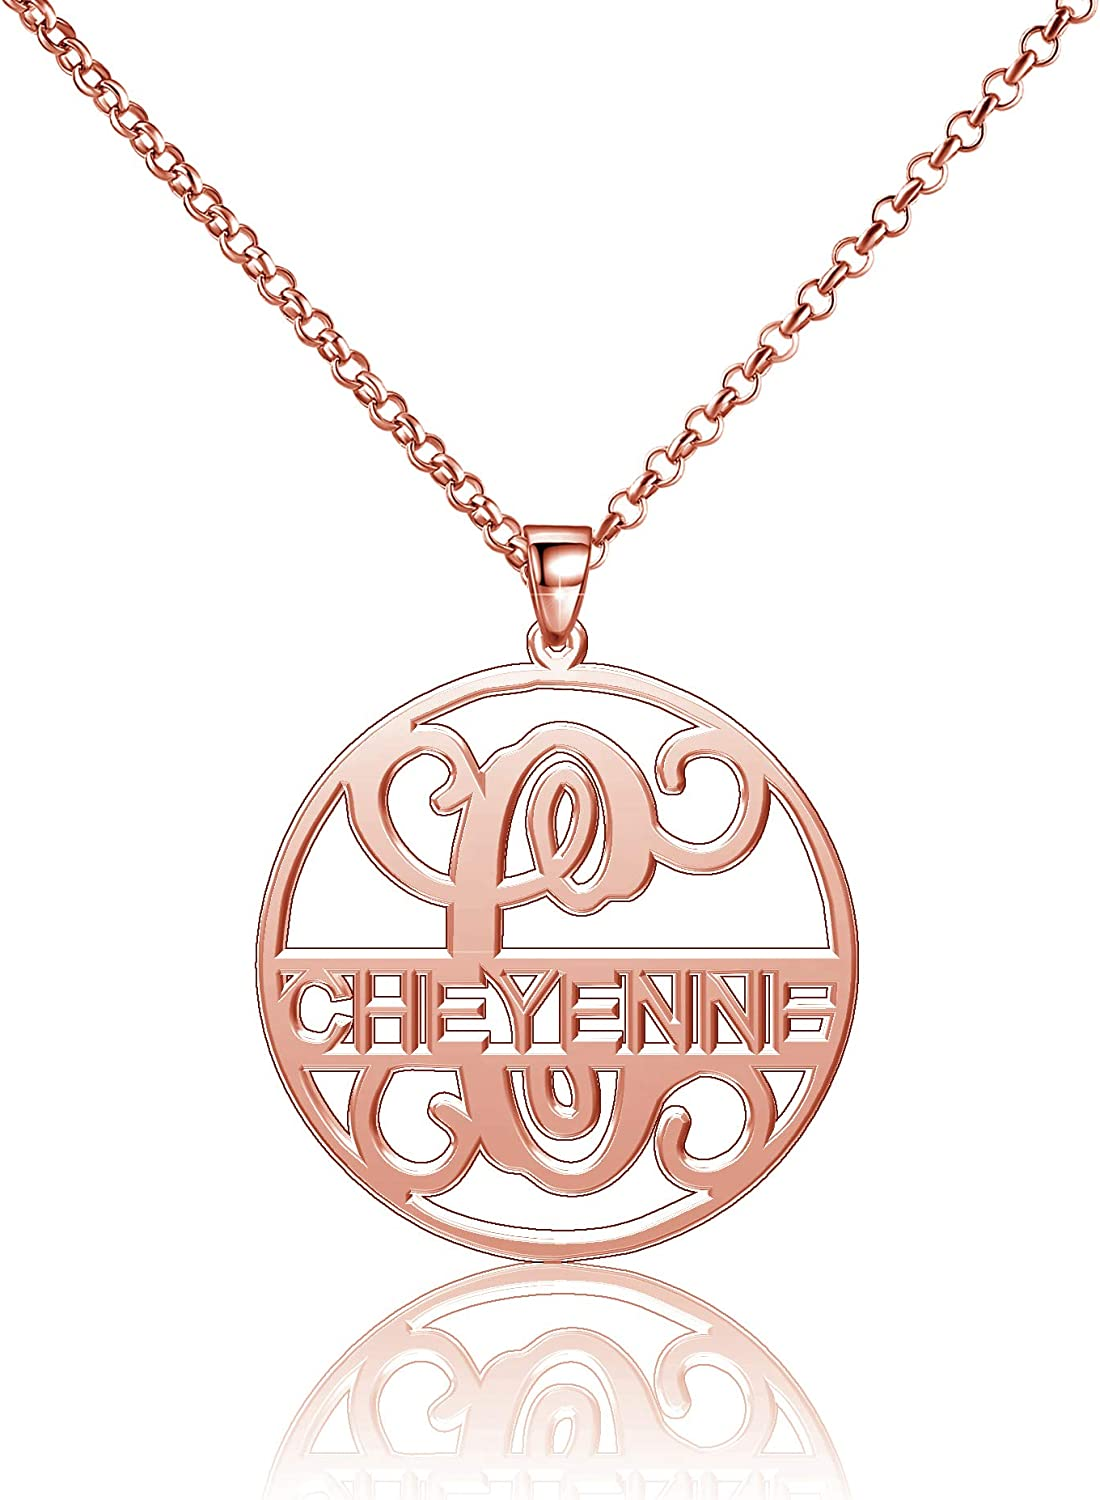 Moonlight Collections Cheyenne Necklace Silver 925 Pendants Personalized Monogrammed Name Plates